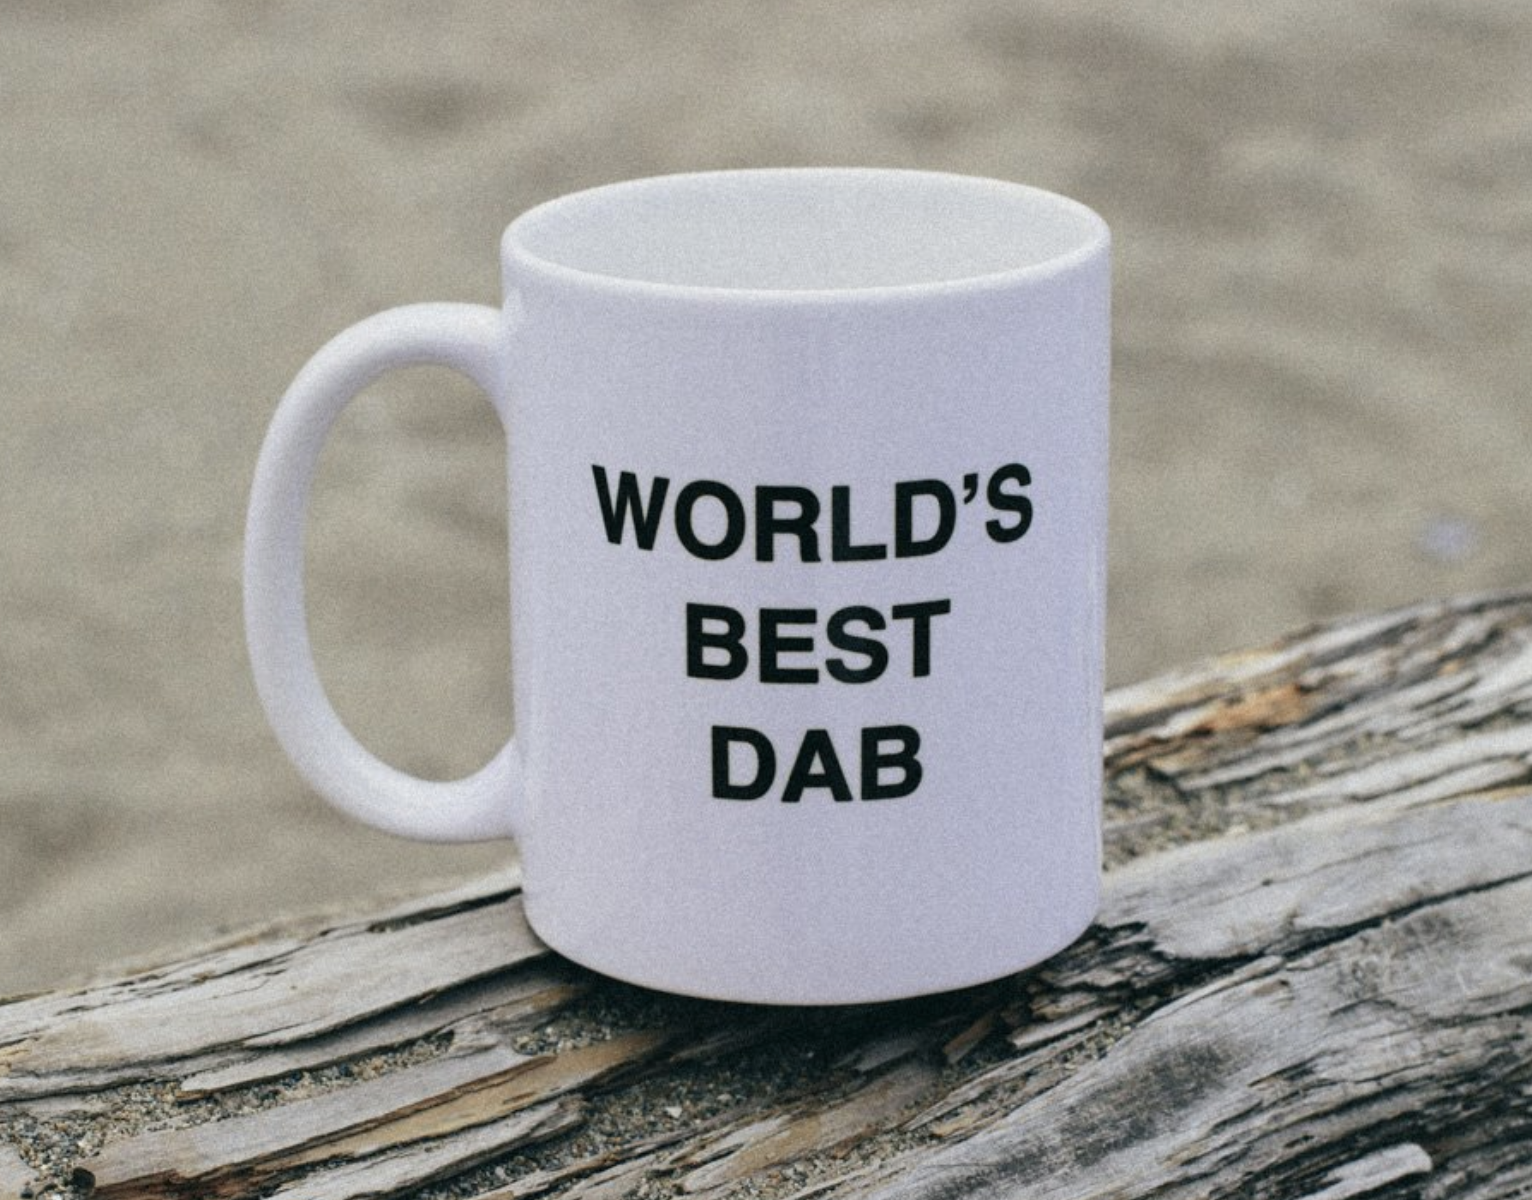 For the dad who loves to wake and bake - Vancouver-based lifestyle brand Studio A-OK will make your dad feel nostalgic and cool at the same time. This mug speaks for itself. Heads up, it's sold out, but we're hoping if enough of us DM them on Instagram they'll bring it back in time for the 16th.